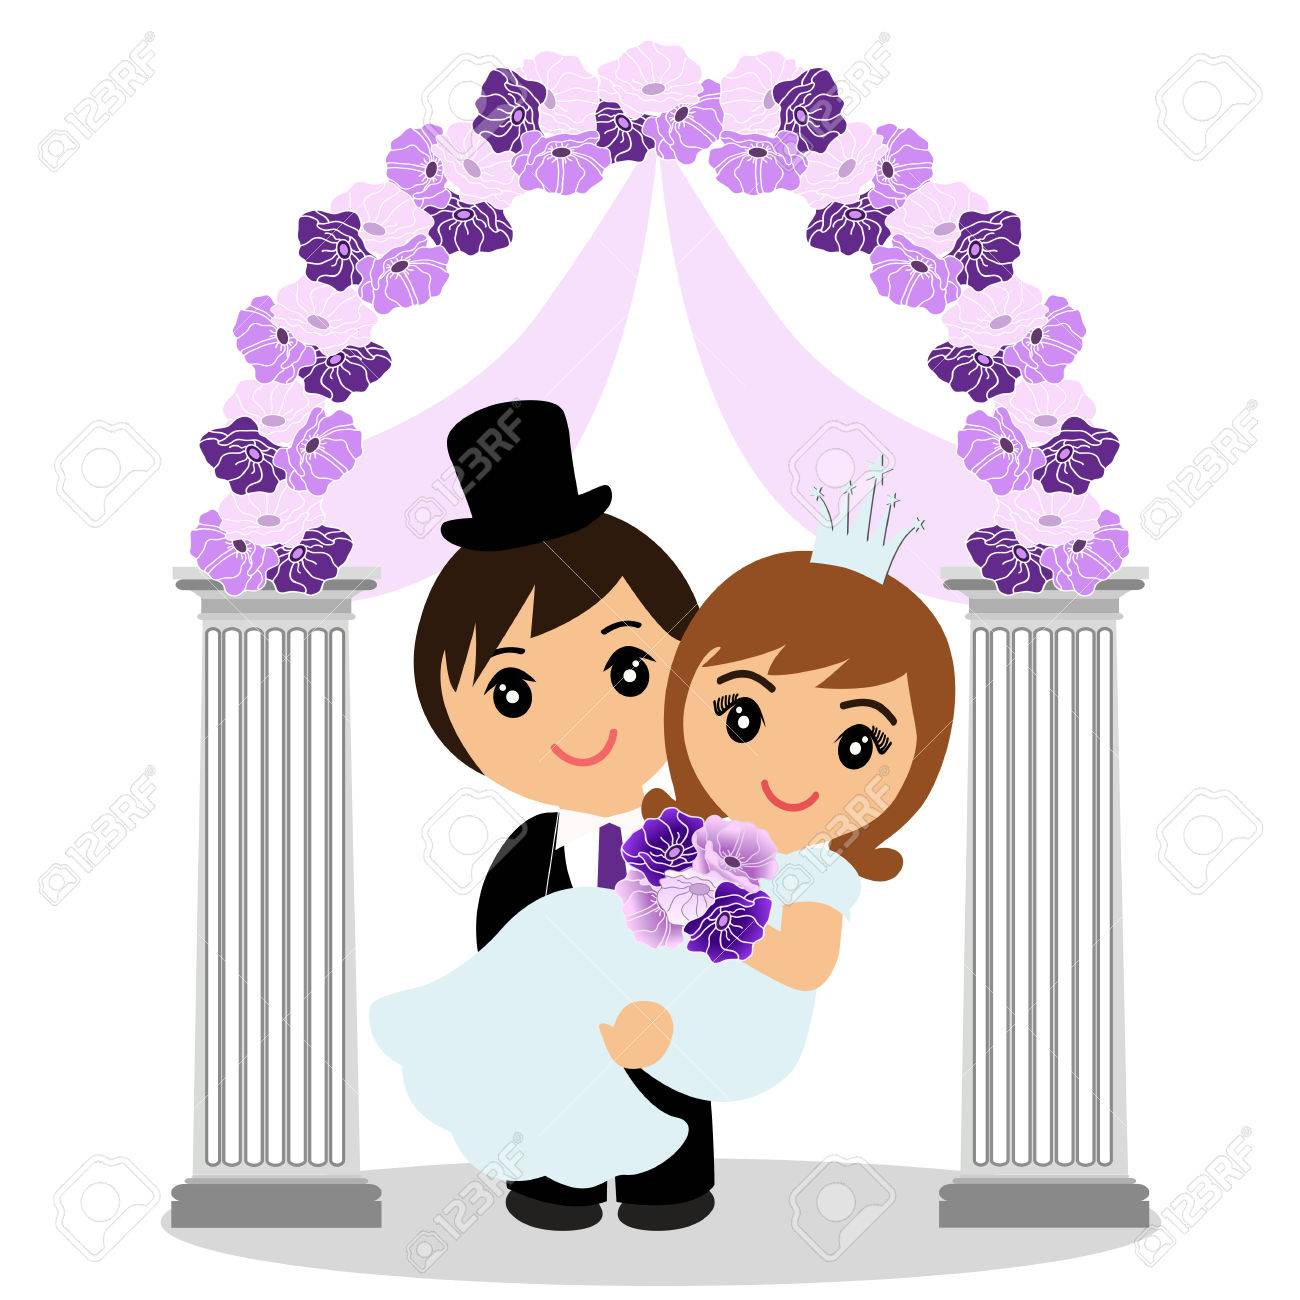 Wedding arch with bride and groom isolated on white background vector wedding arch with bride and groom isolated on white background bride and groom wedding design wedding decoration vector illustration junglespirit Gallery